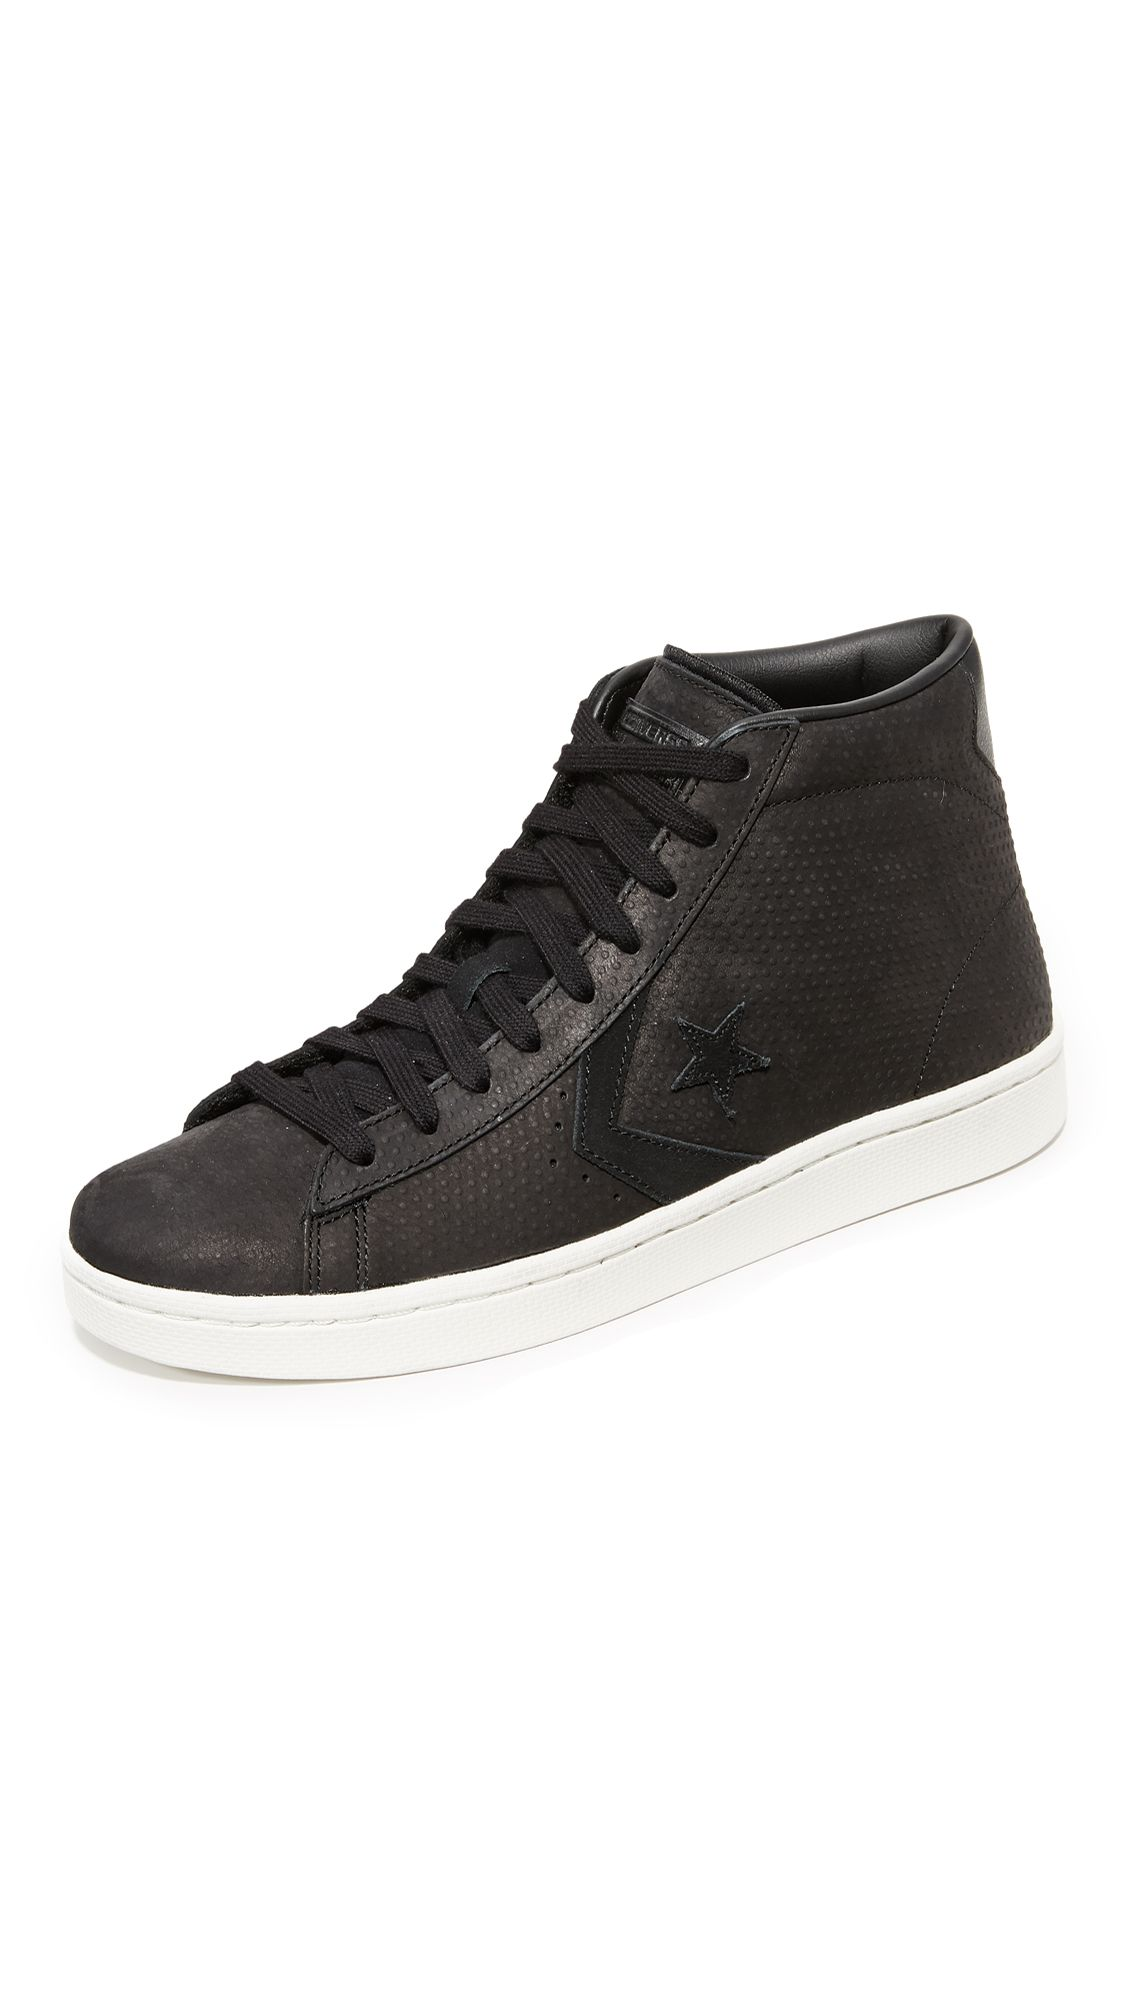 converse pro leather mid top